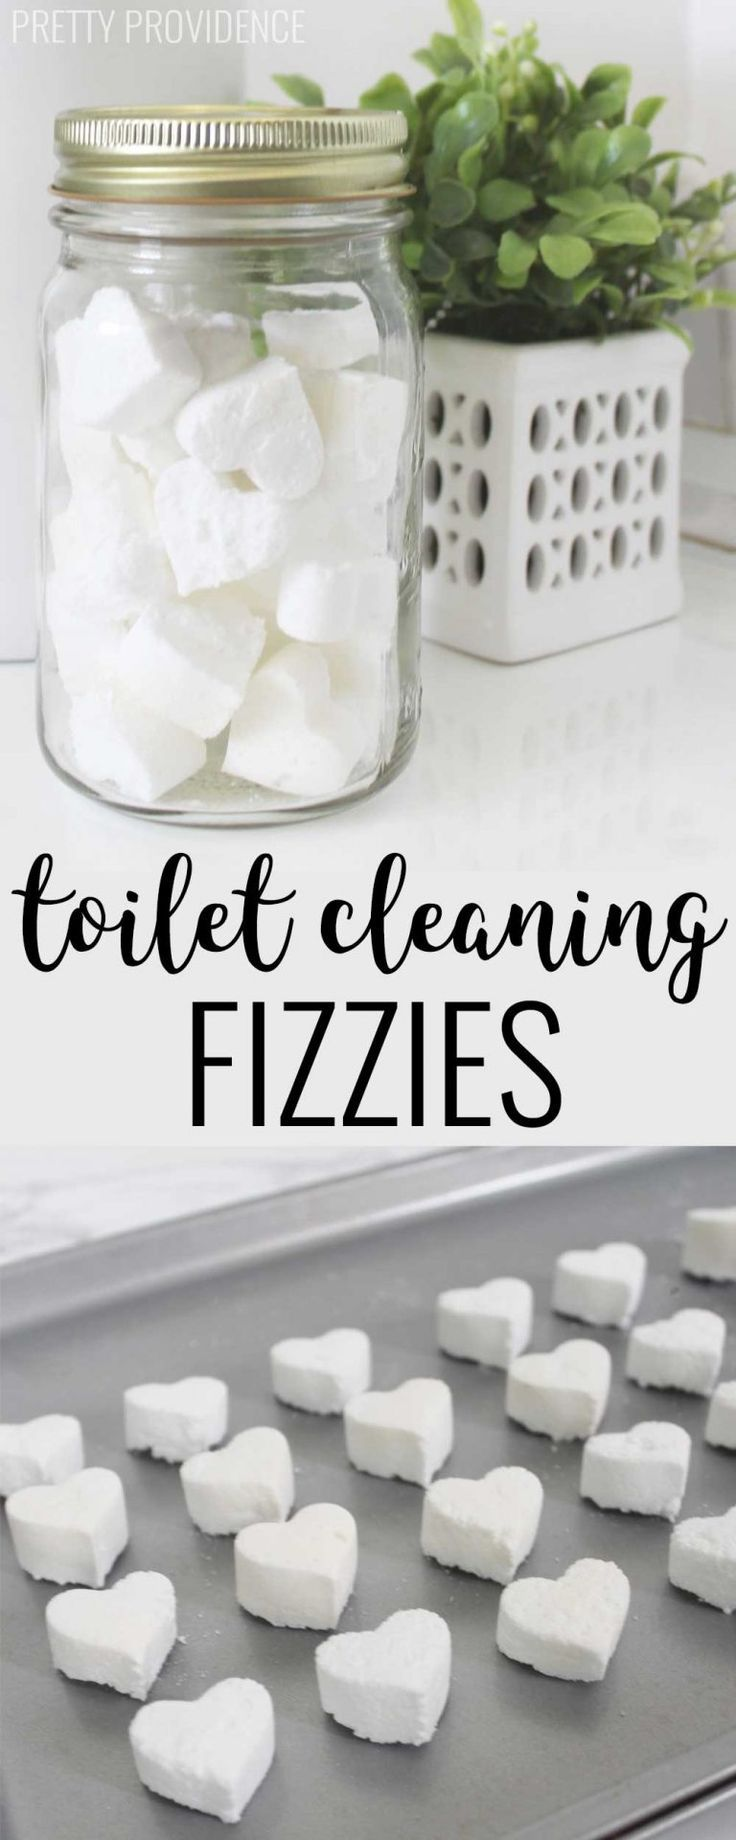 fizzy toilet bombs recipe products i love toilet cleaning diy rh pinterest com